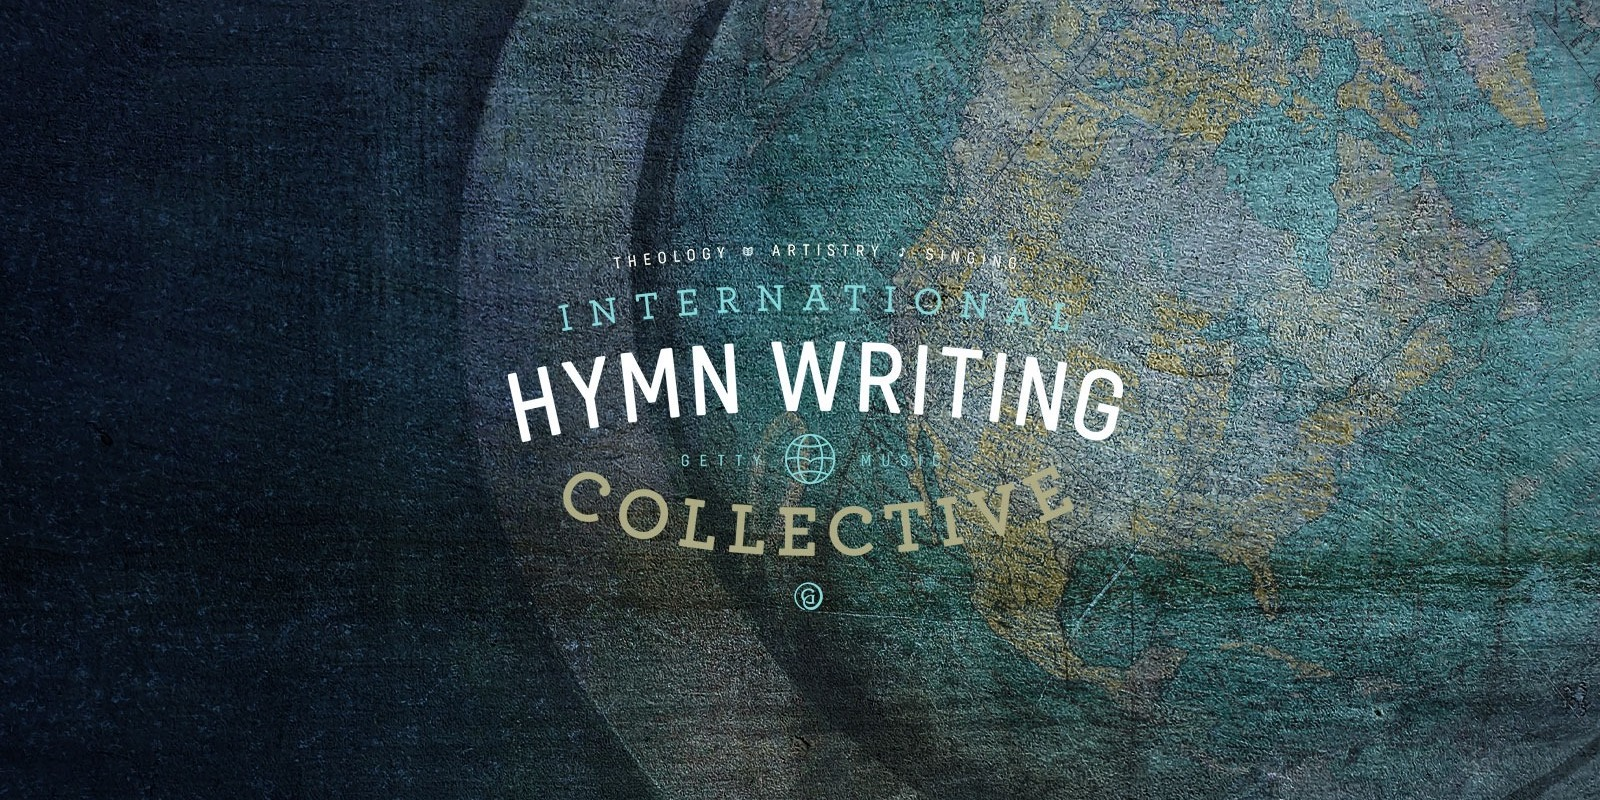 Getty Music Hymn Writing Collective